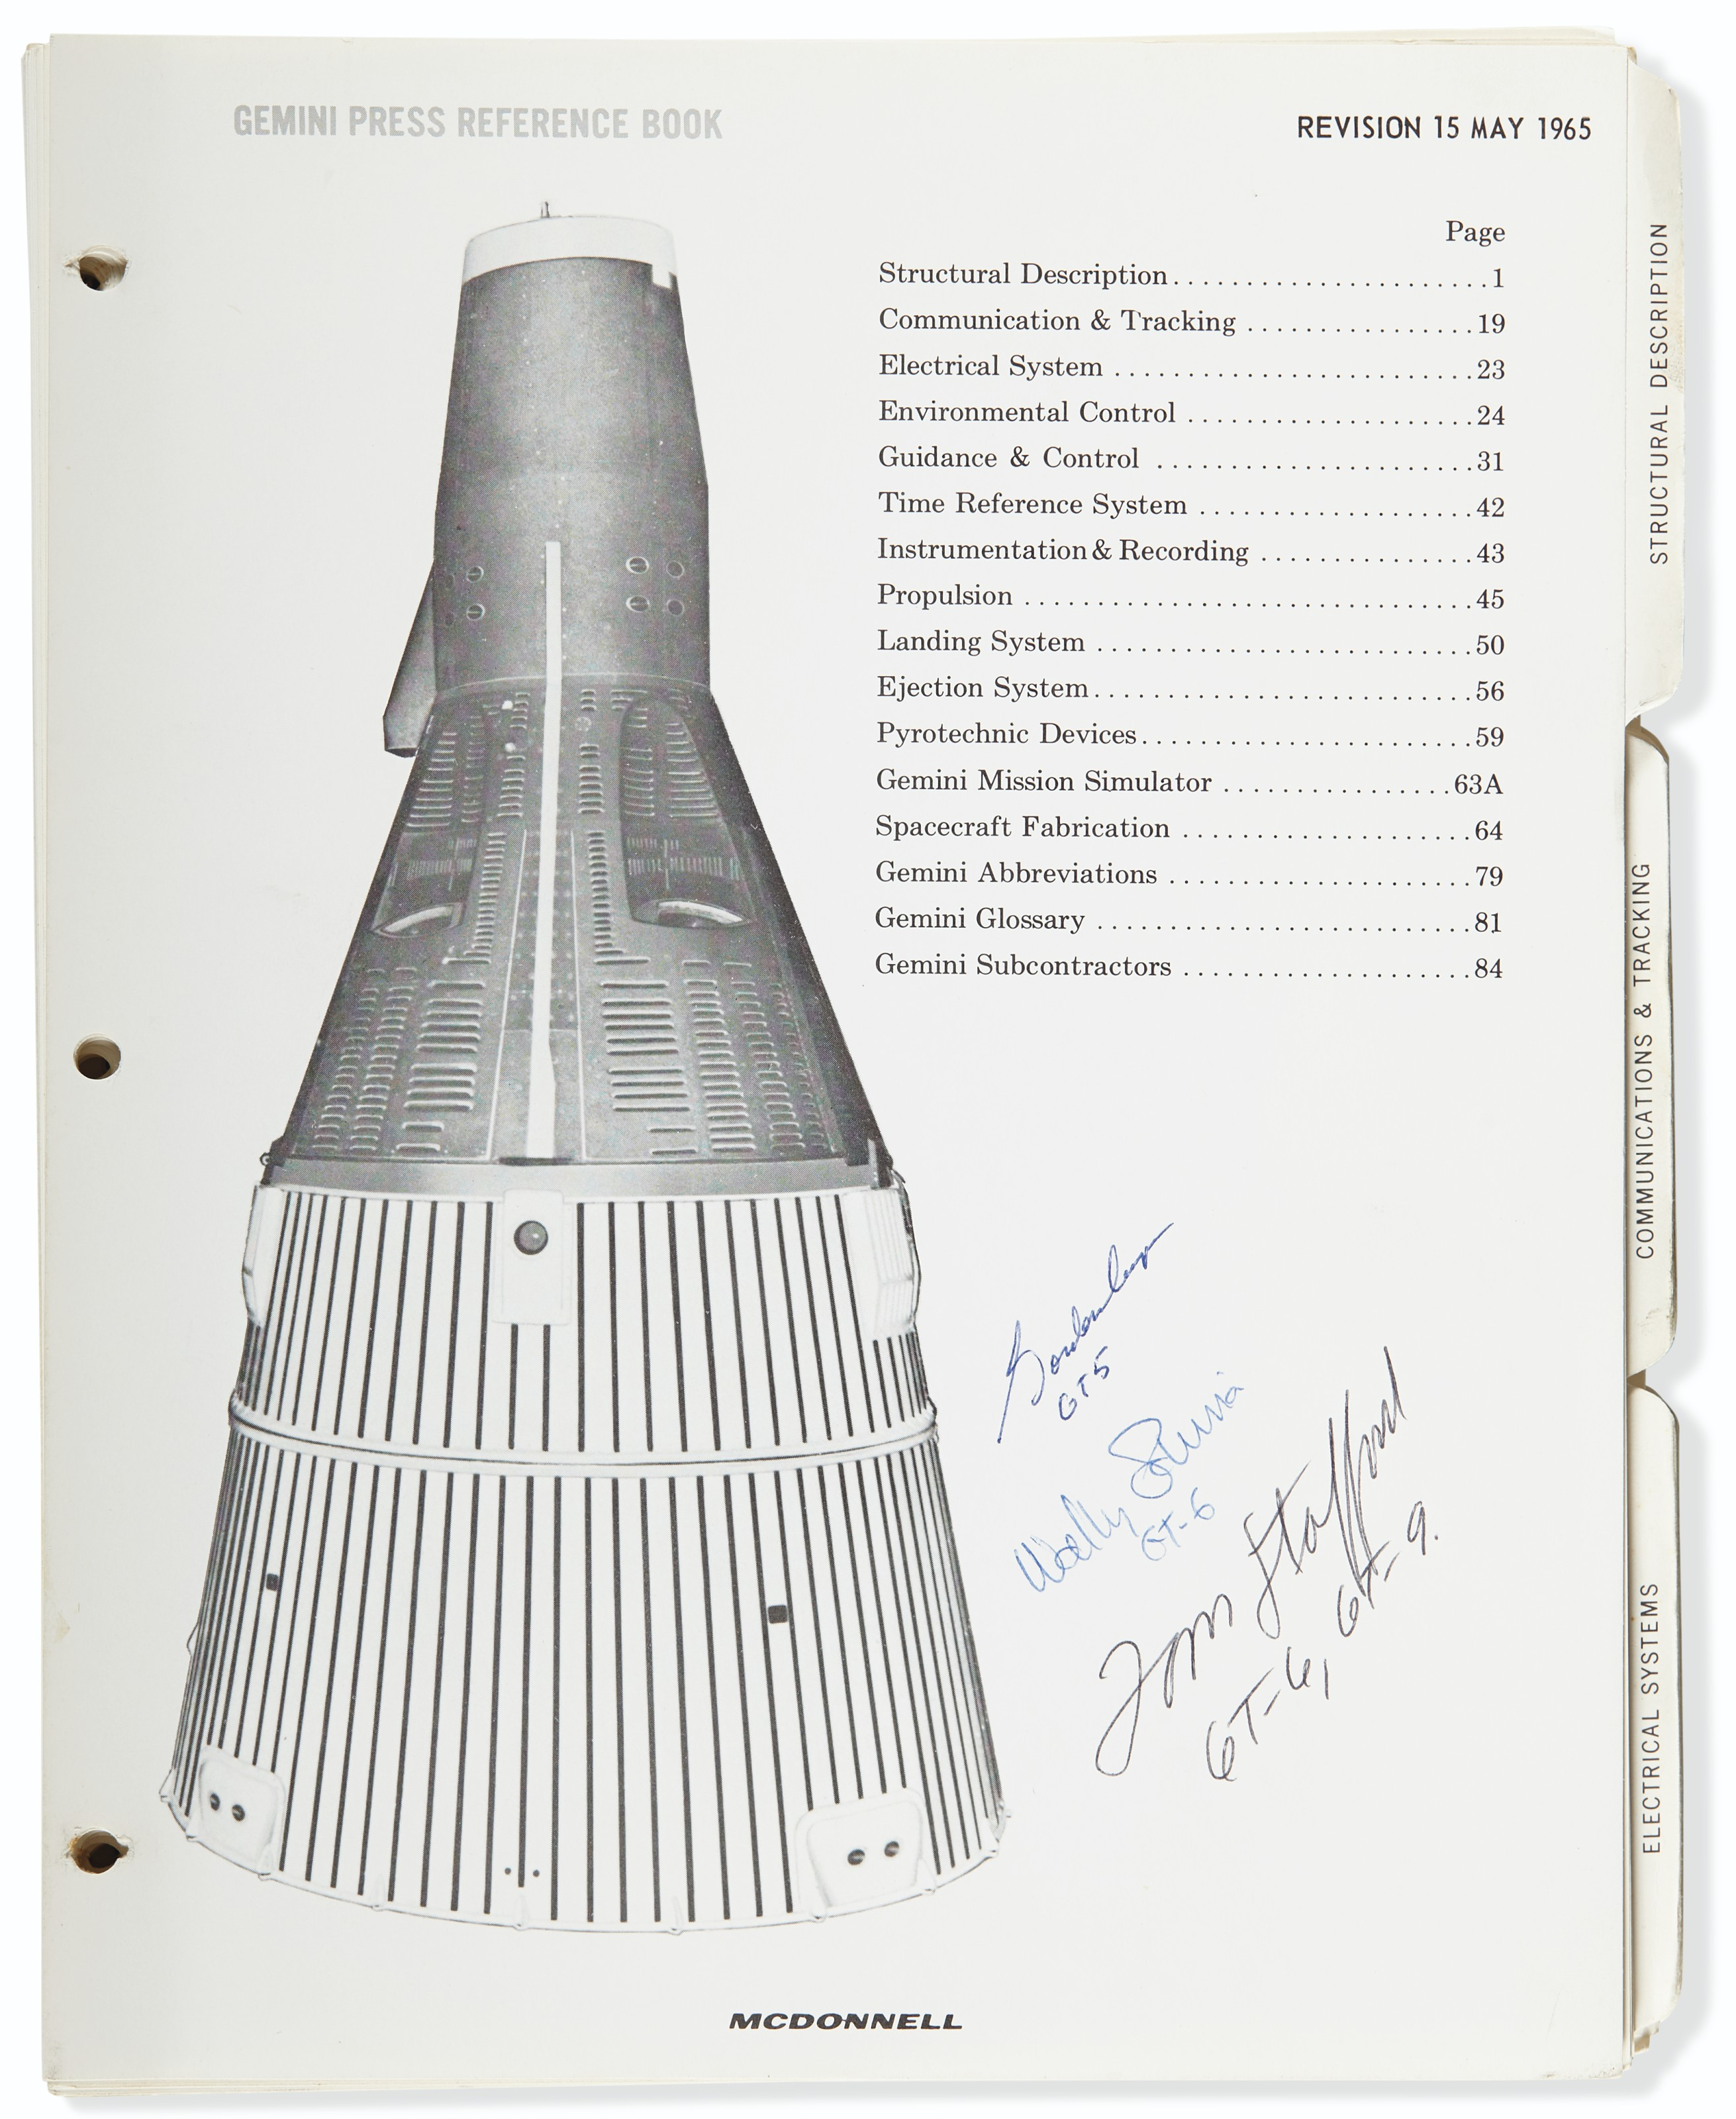 GEMINI-TITAN 4 MISSION – Gemini Spacecraft Number Four . McDonnell Aircraft...